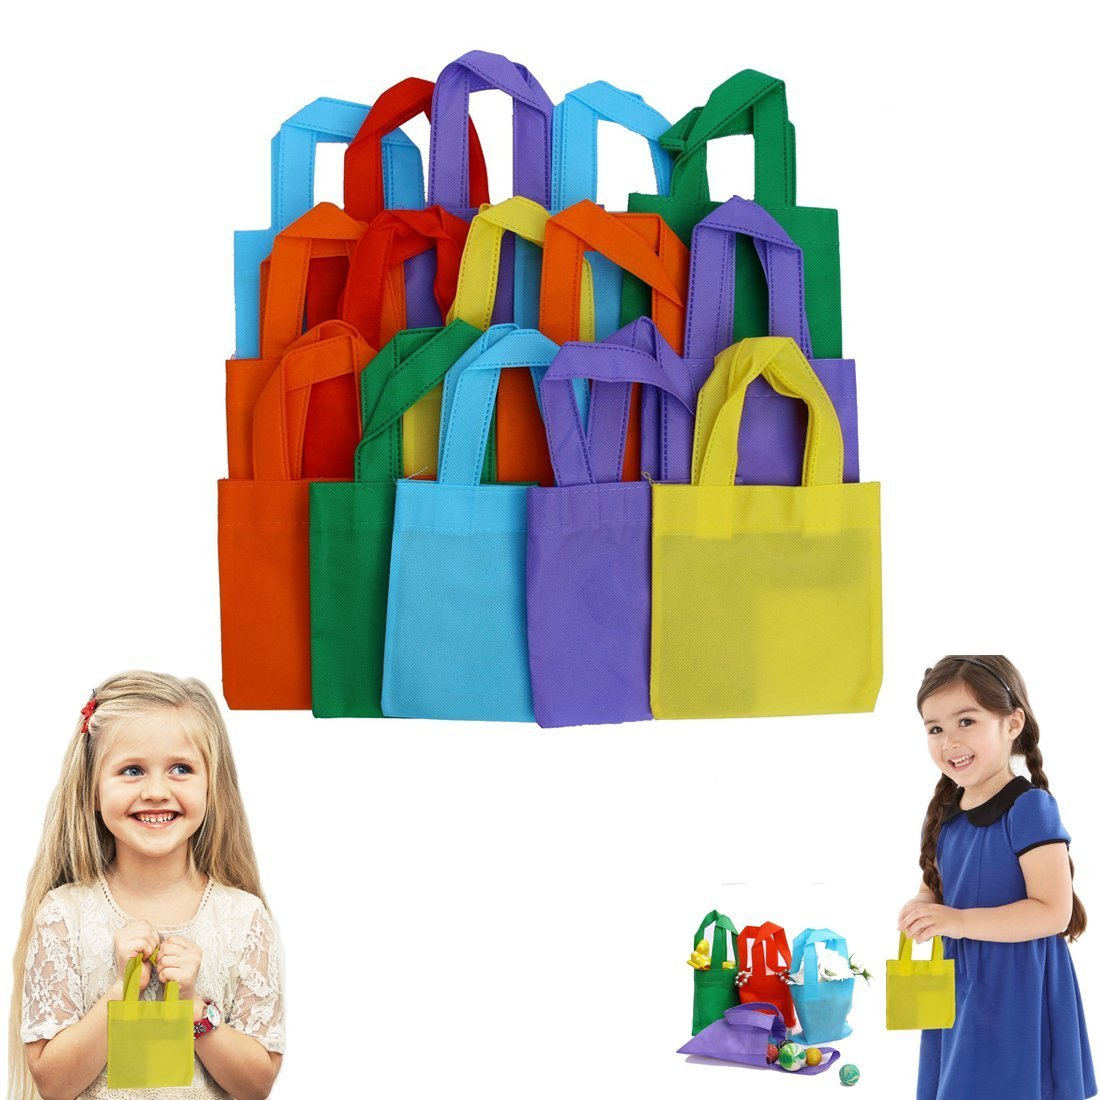 Party Favor Tote Gift Bags with Handles - Polyester Non-Woven Material, 24 Pack, Assorted Bright Colors - by Dazzling Toys